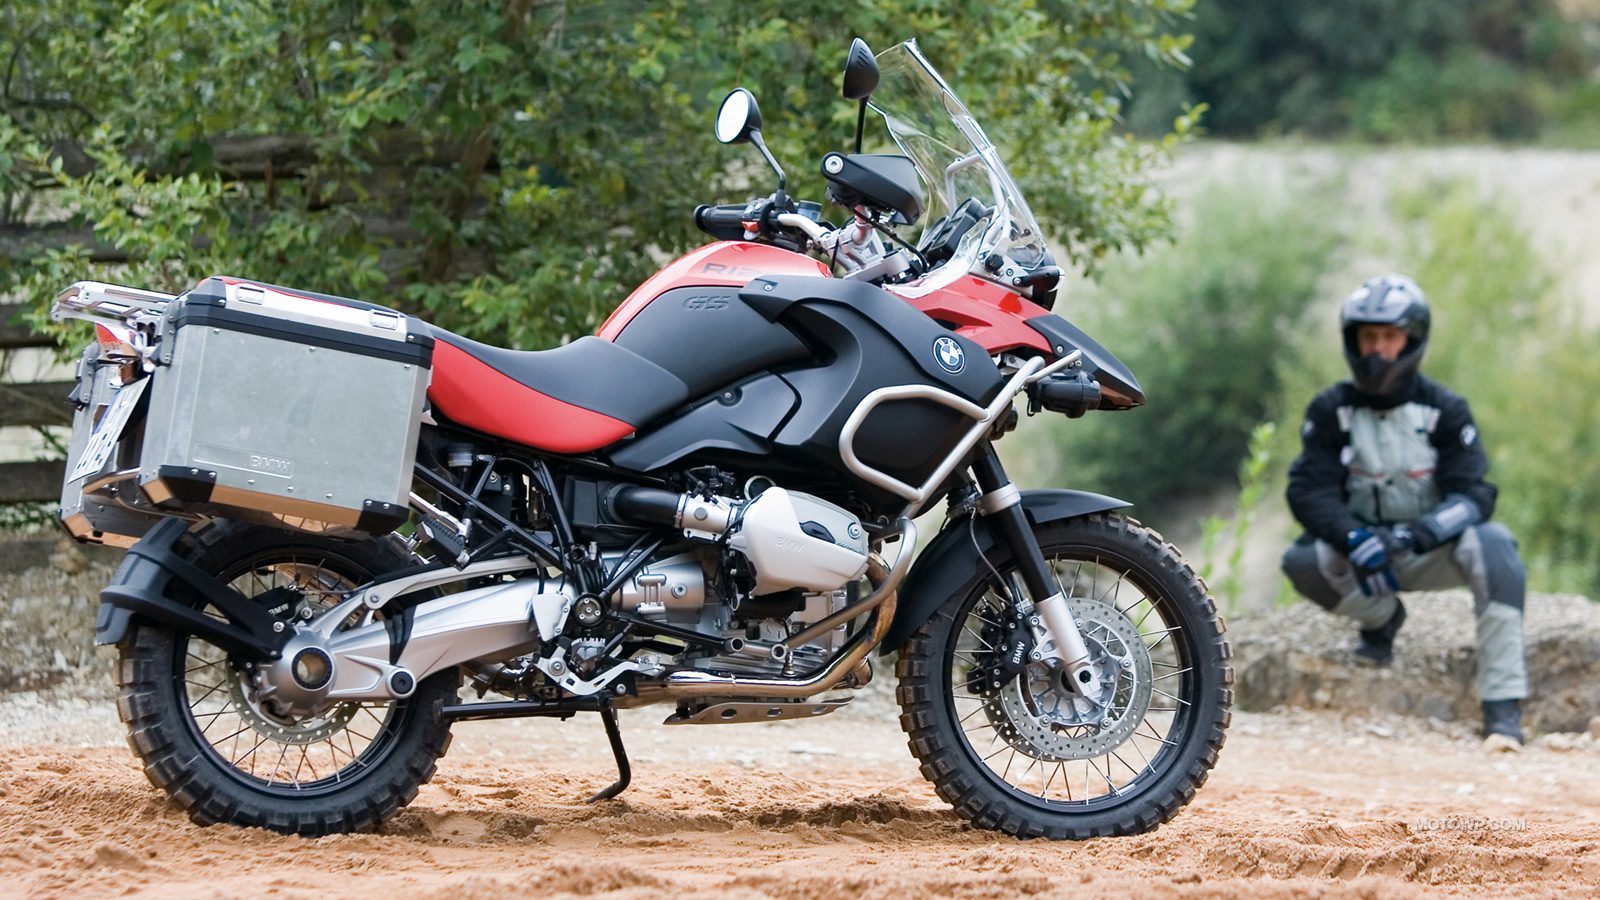 BMW R1200GS images #8260